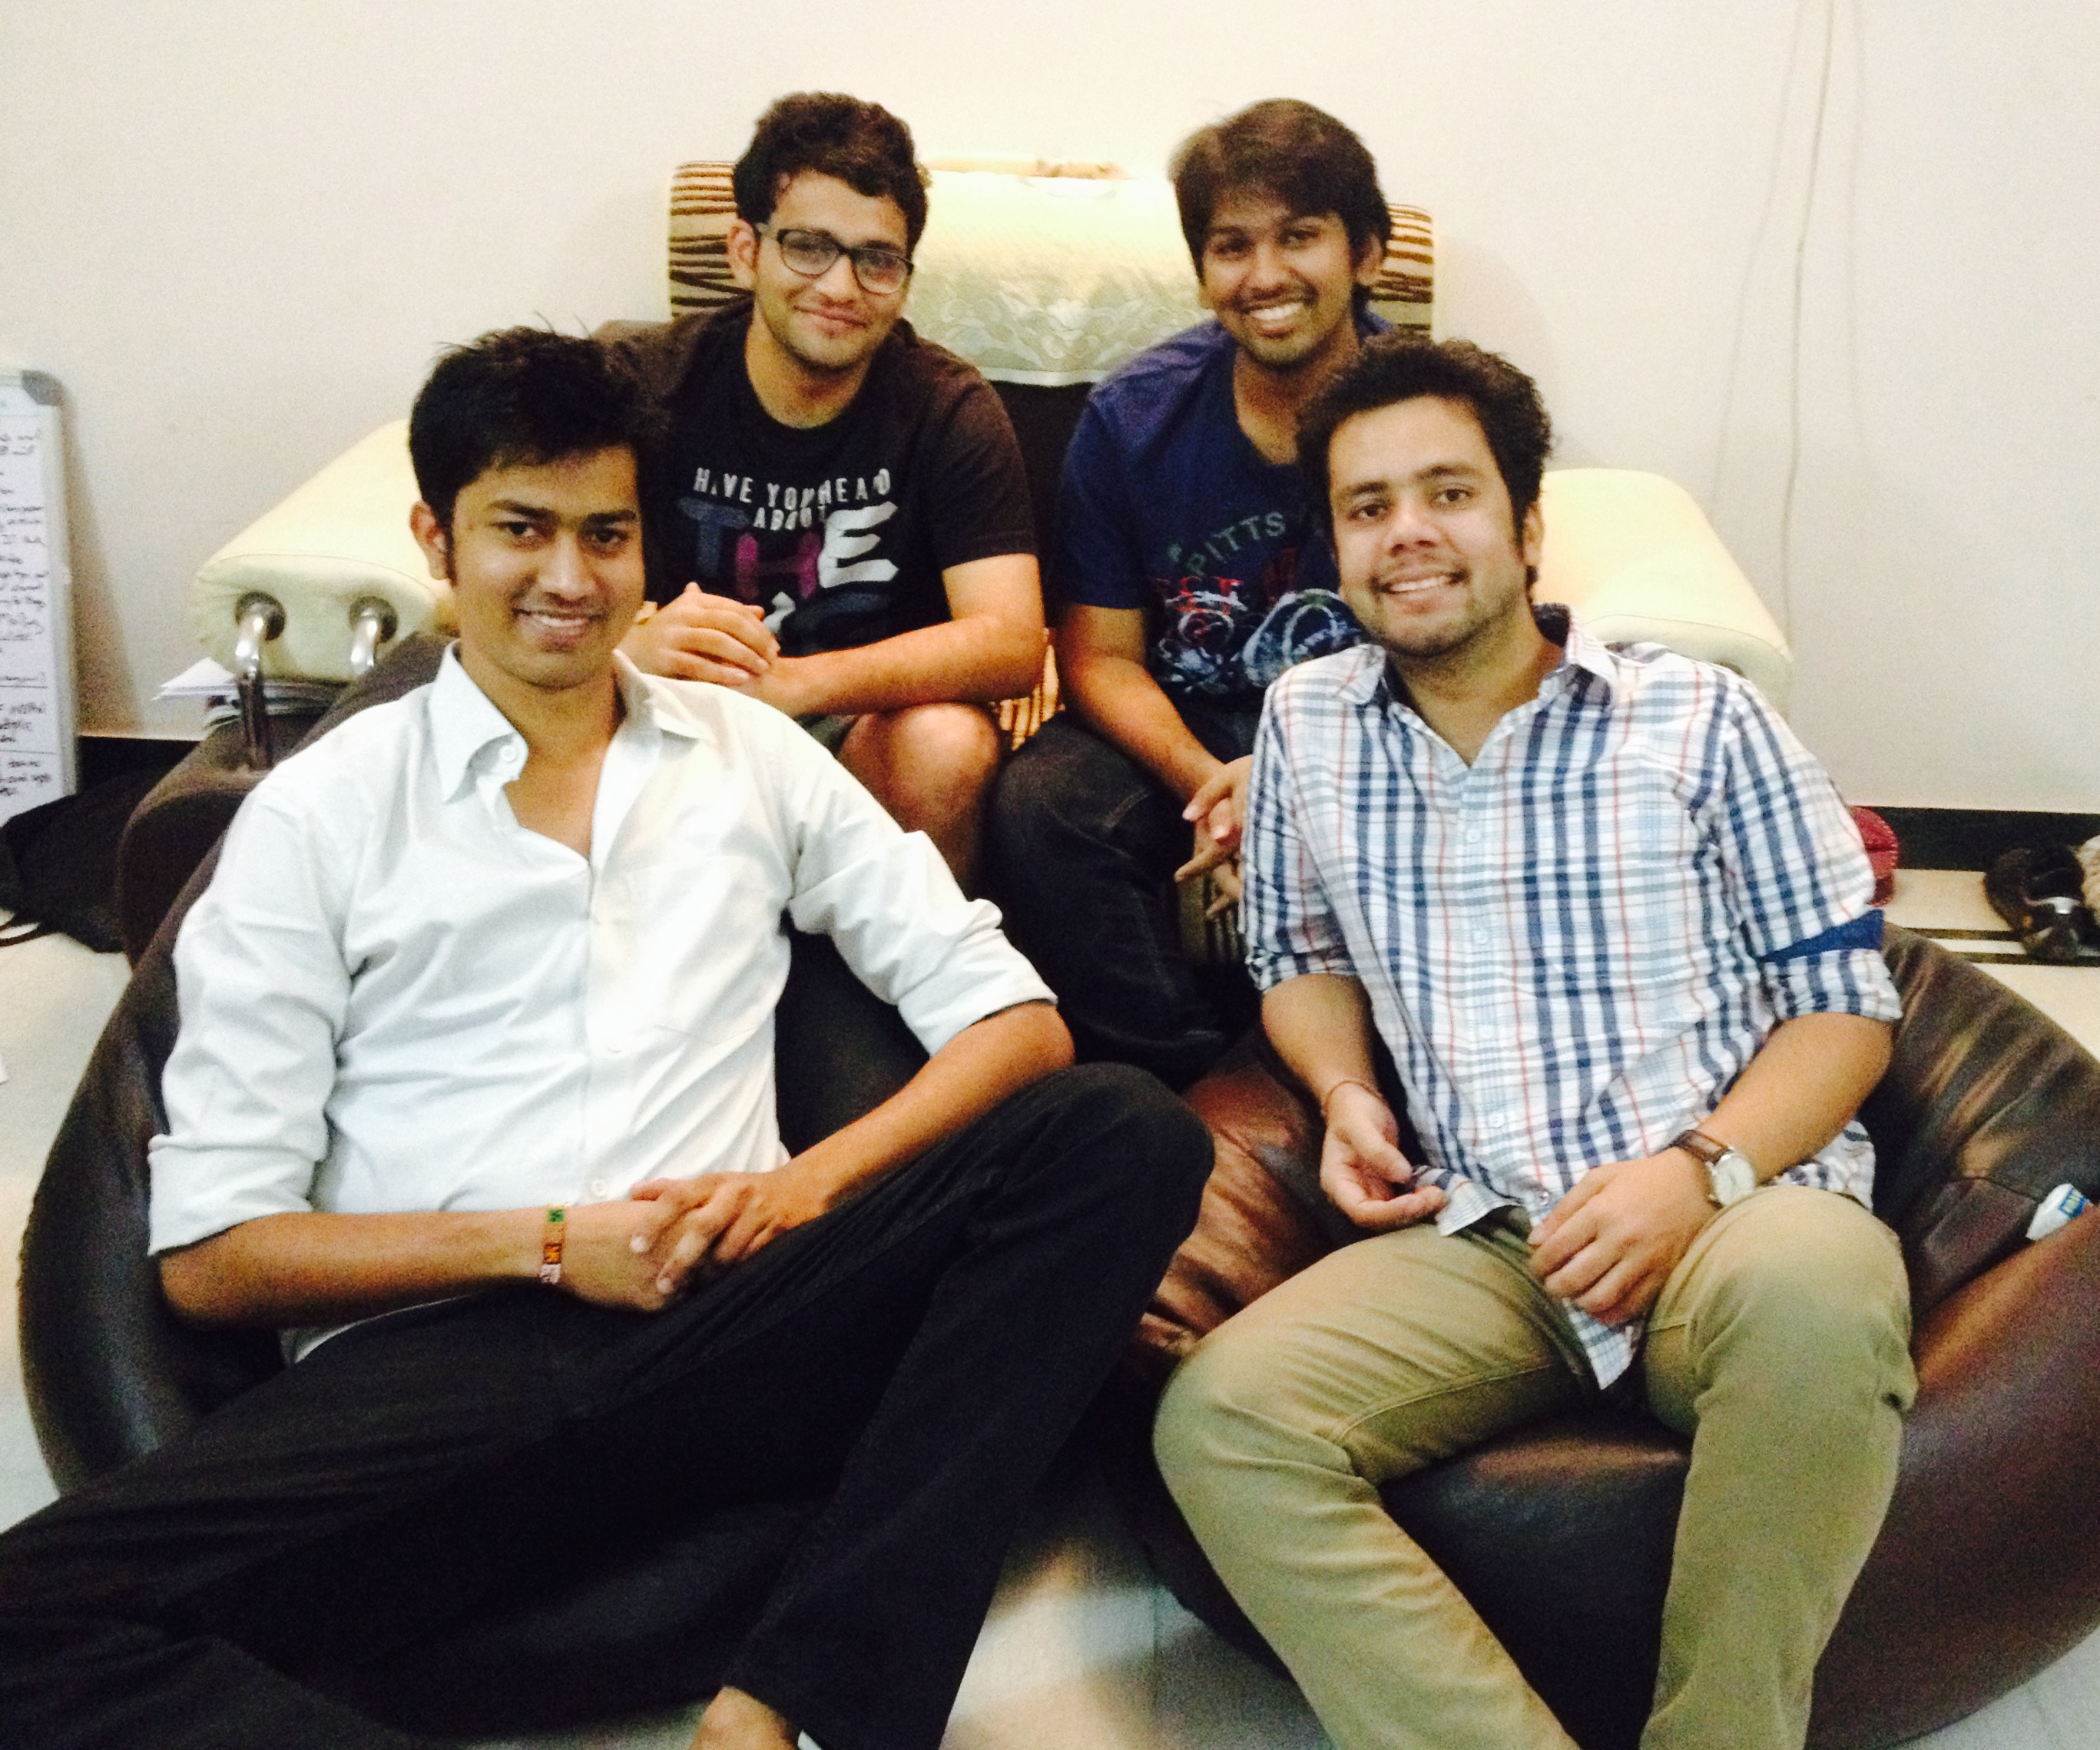 Team Medyog 1(Pranat Bhadani, Parth Dhoot, Shantanu Jain & Nitin Jain- from left) (1)